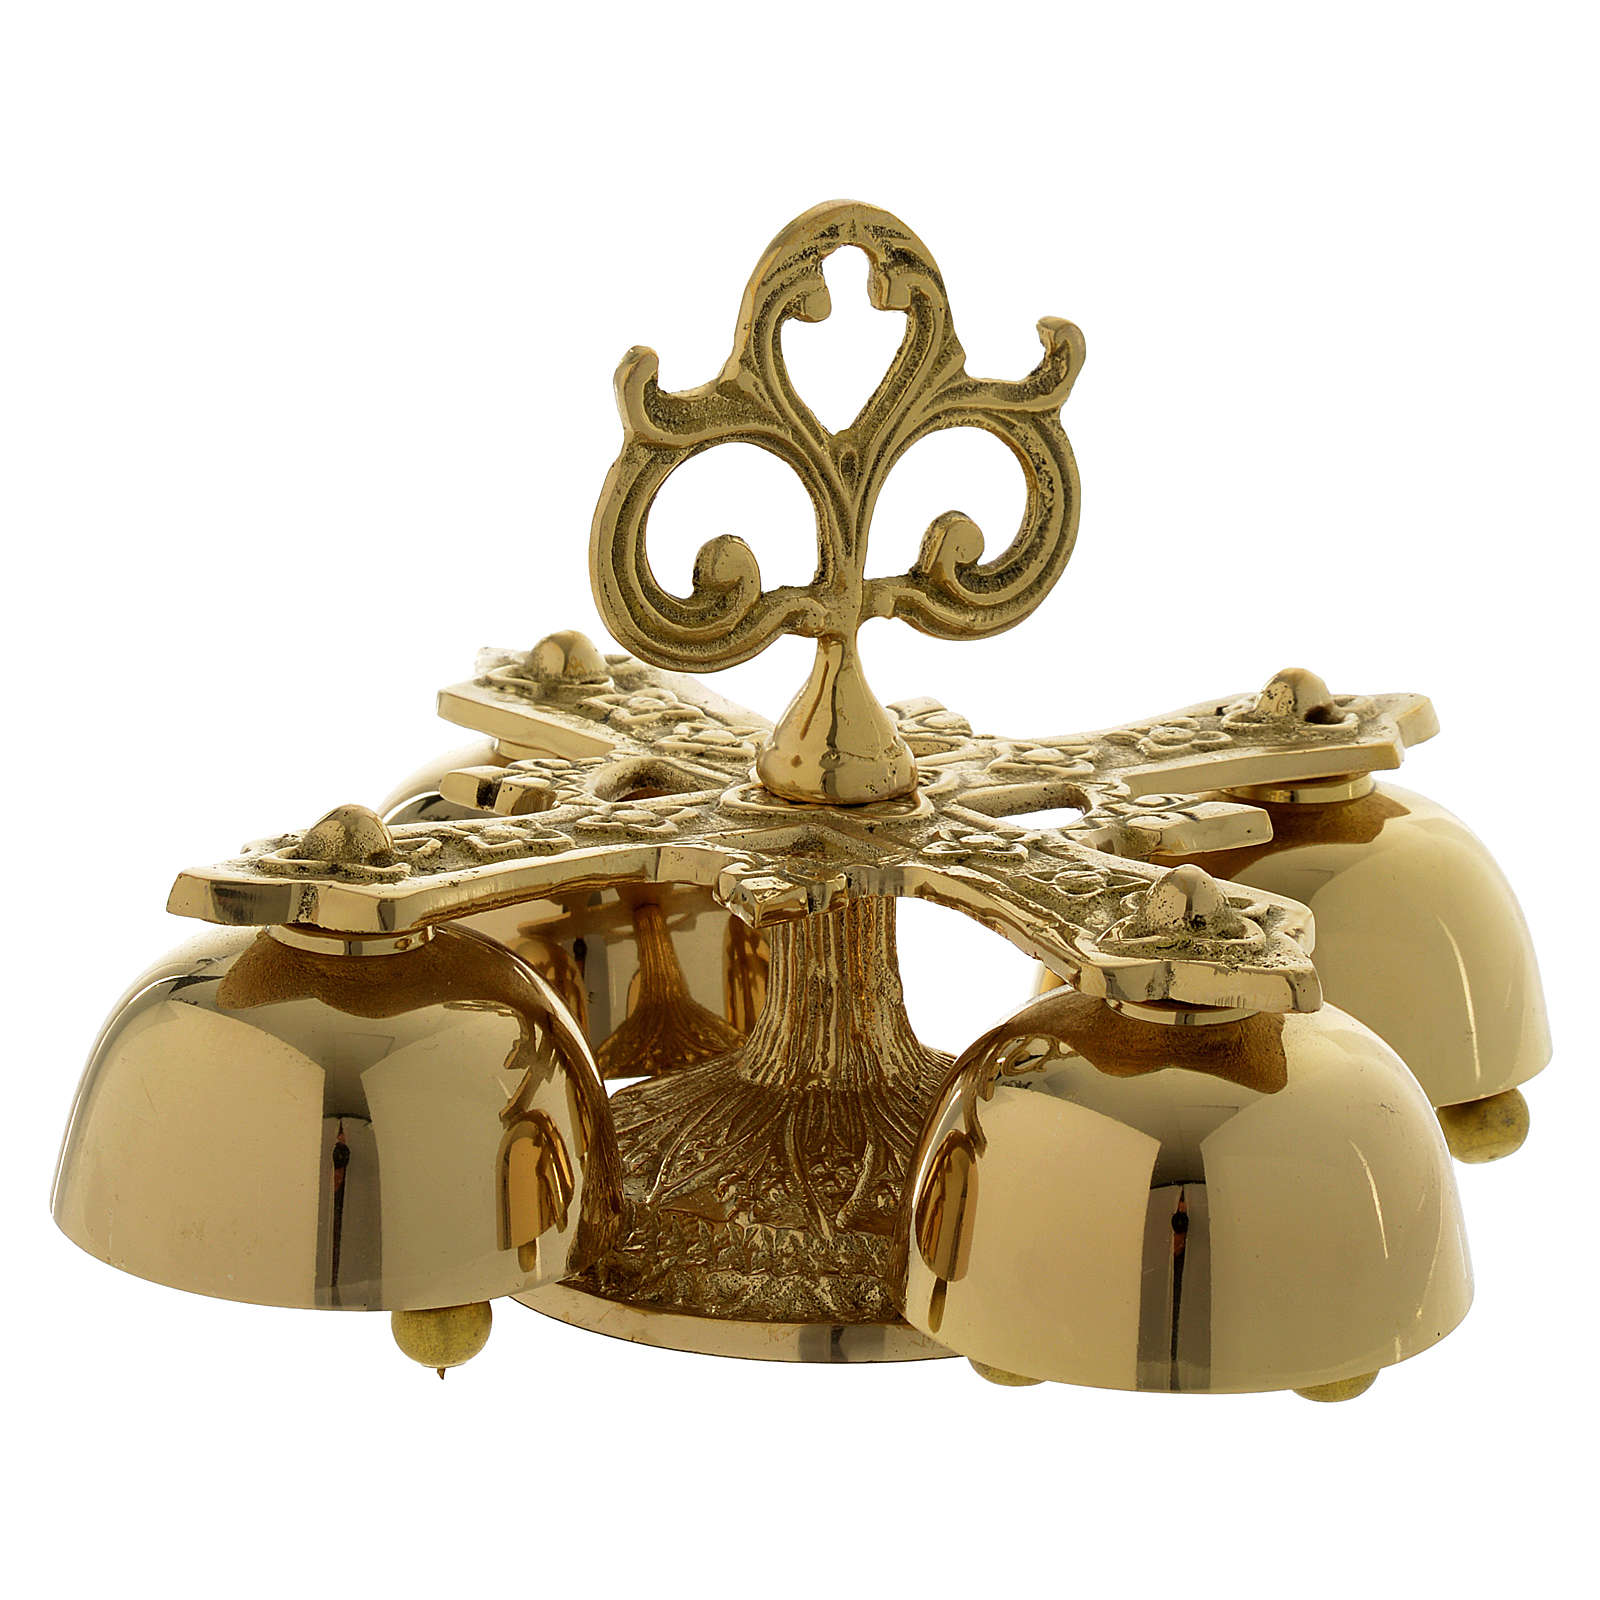 Liturgical bell with 4 sounds in golden brass 3